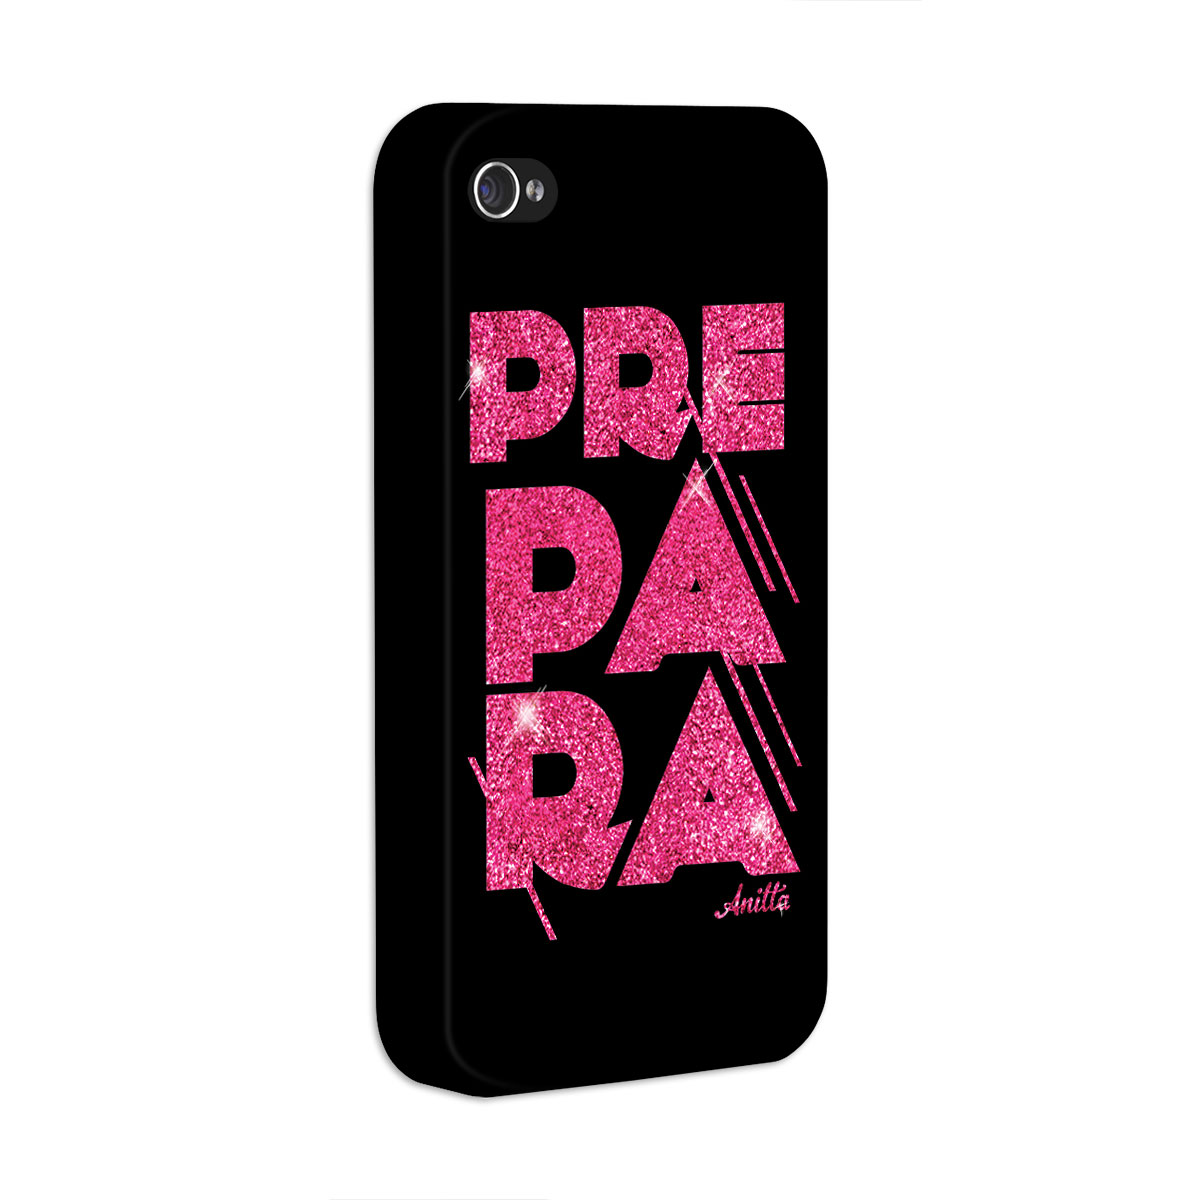 Capa para iPhone 4/4S Anitta Prepara Black